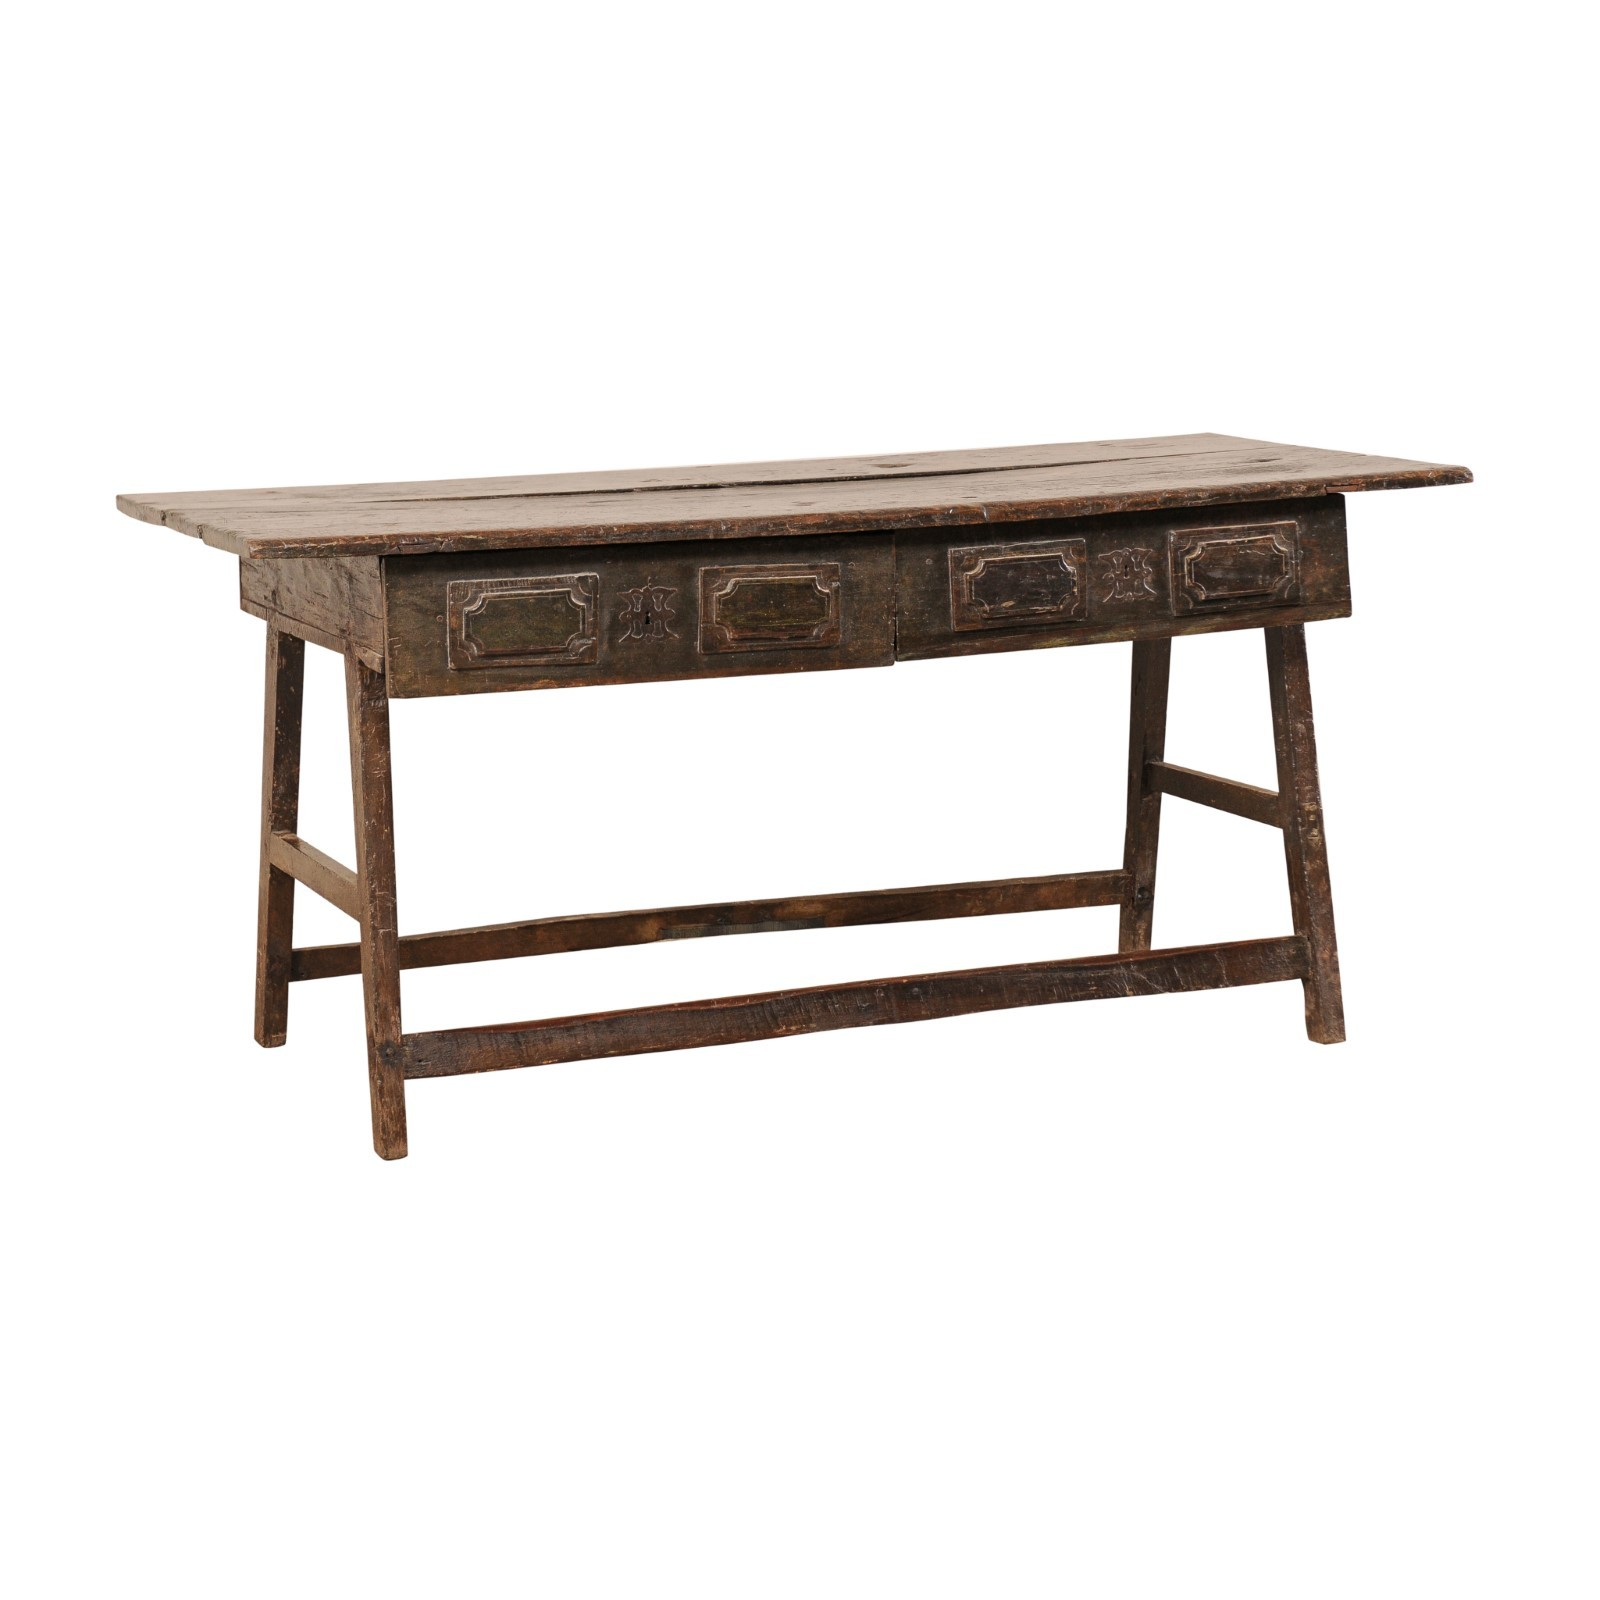 Late 17th C. Brazilian Peroba Wood Table